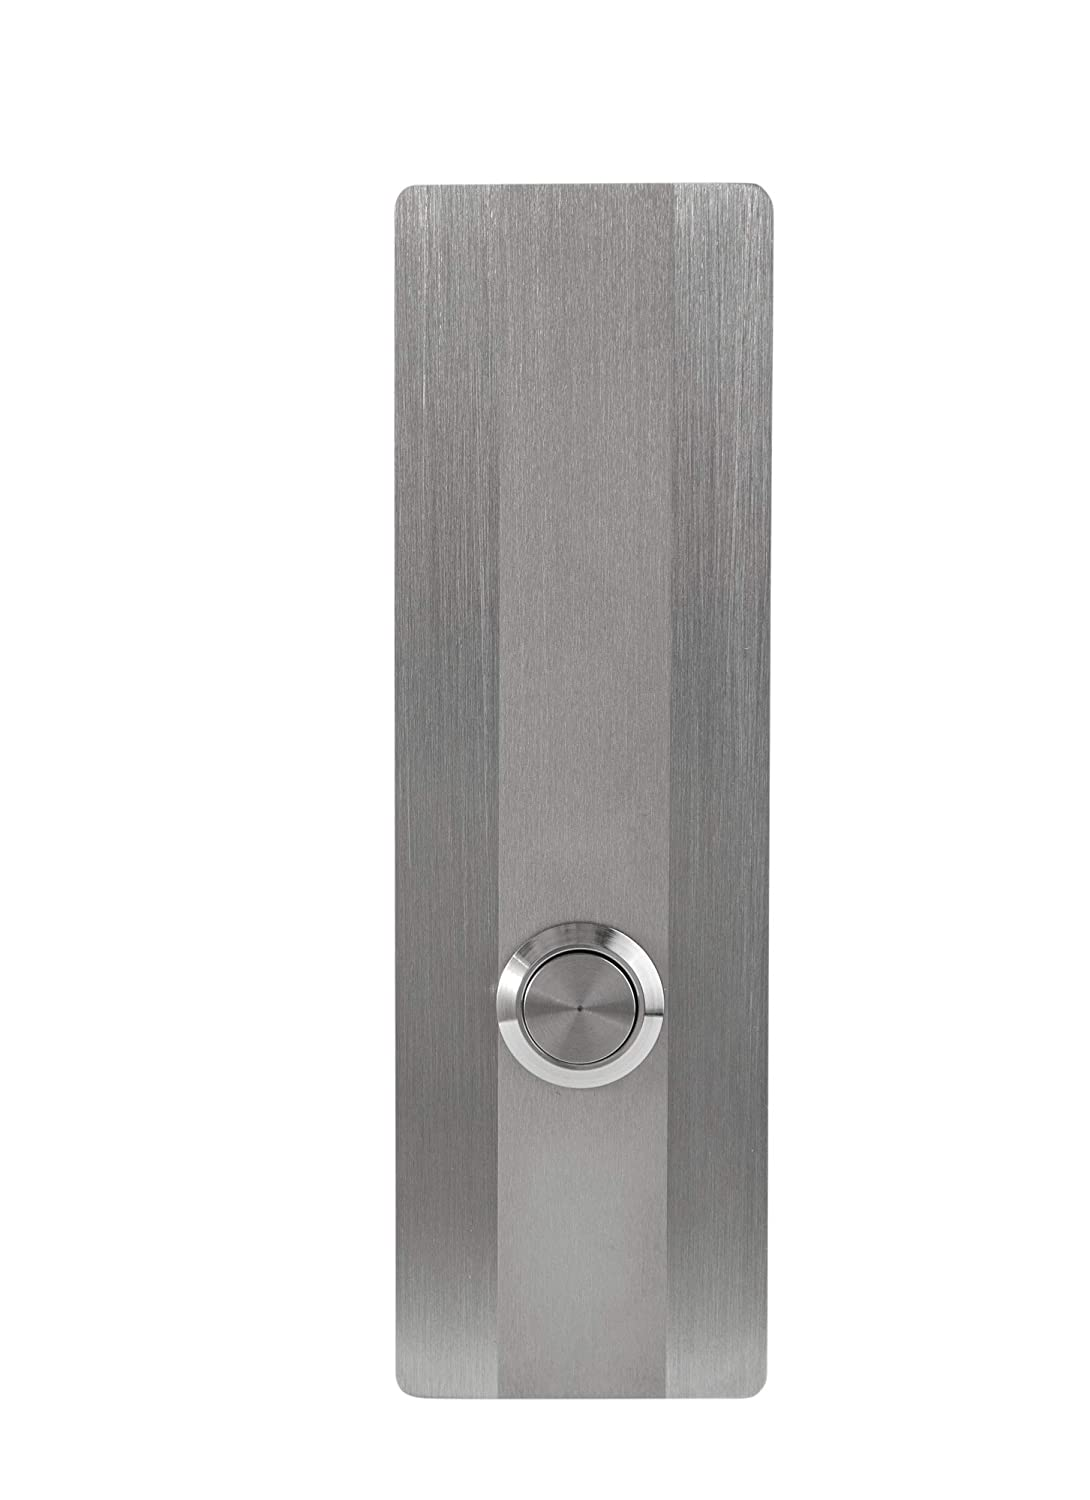 """Modern Stainless Hardware Model R3 Stainless Steel Doorbell Button in 304 Stainless Steel 1.57"""" x 5.11"""" x 5 32"""" 4mm thick"""